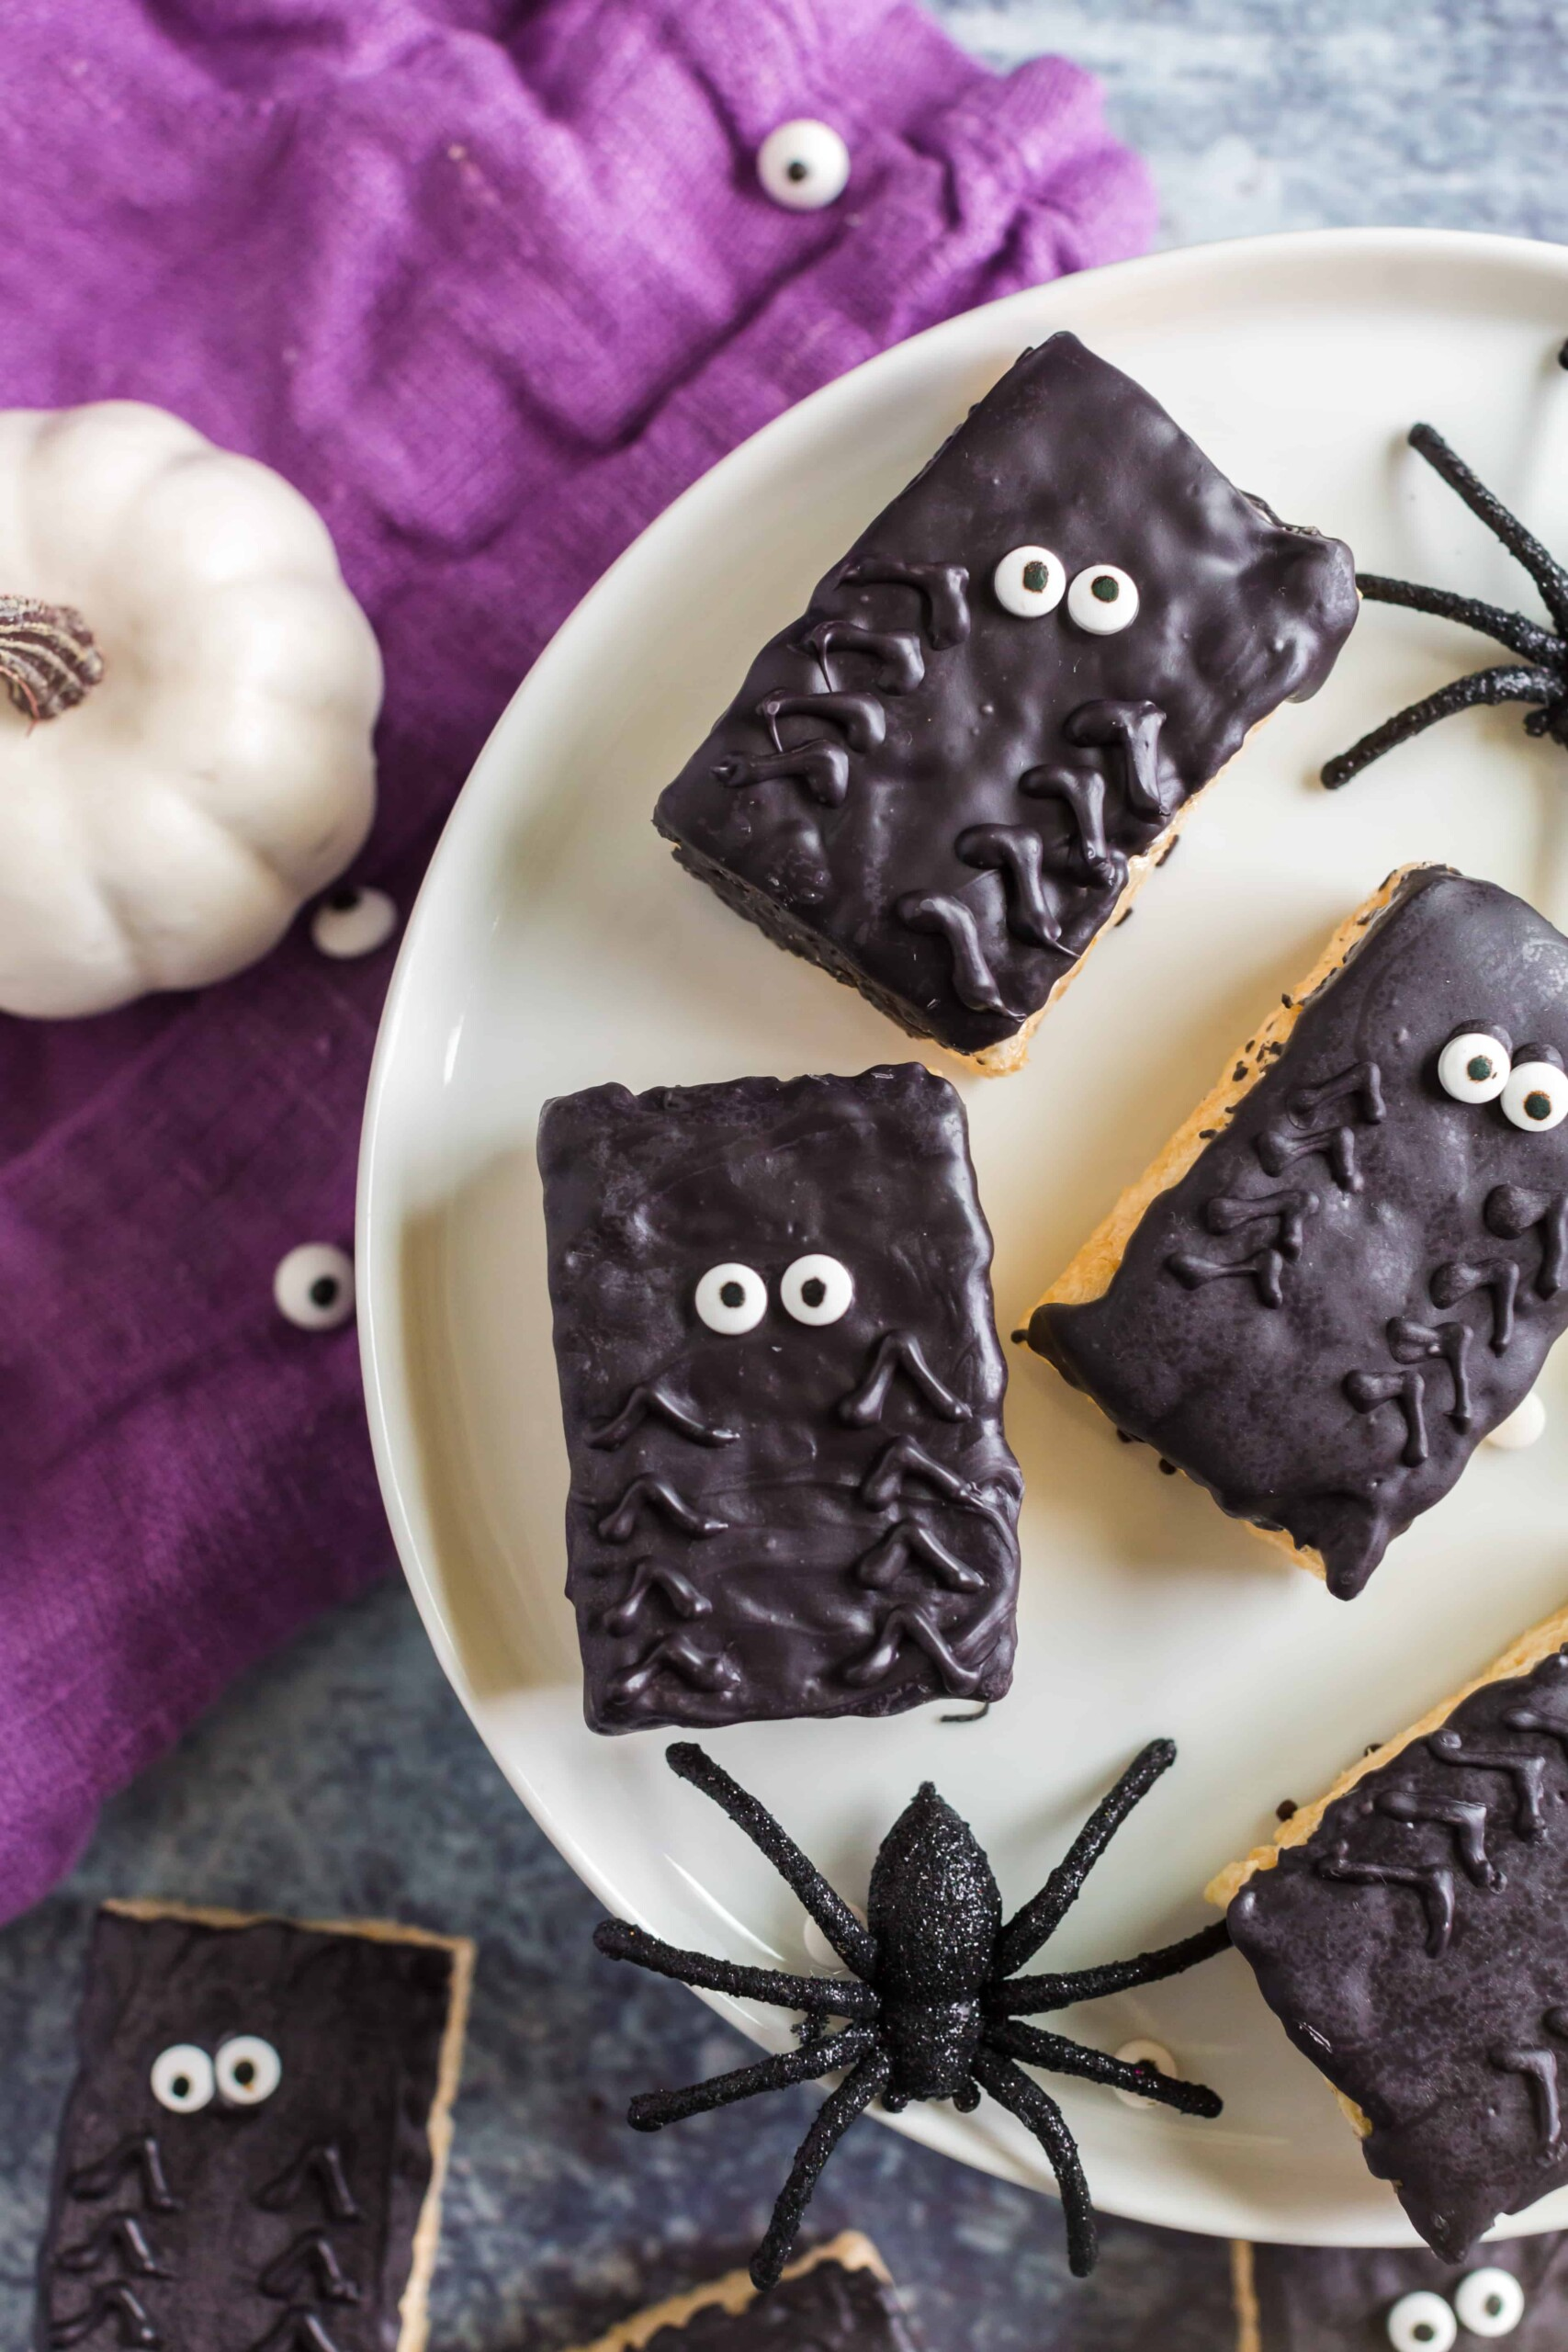 Plate with rice krispie treats decorated with chocolate and candy eyes to resemble spiders.